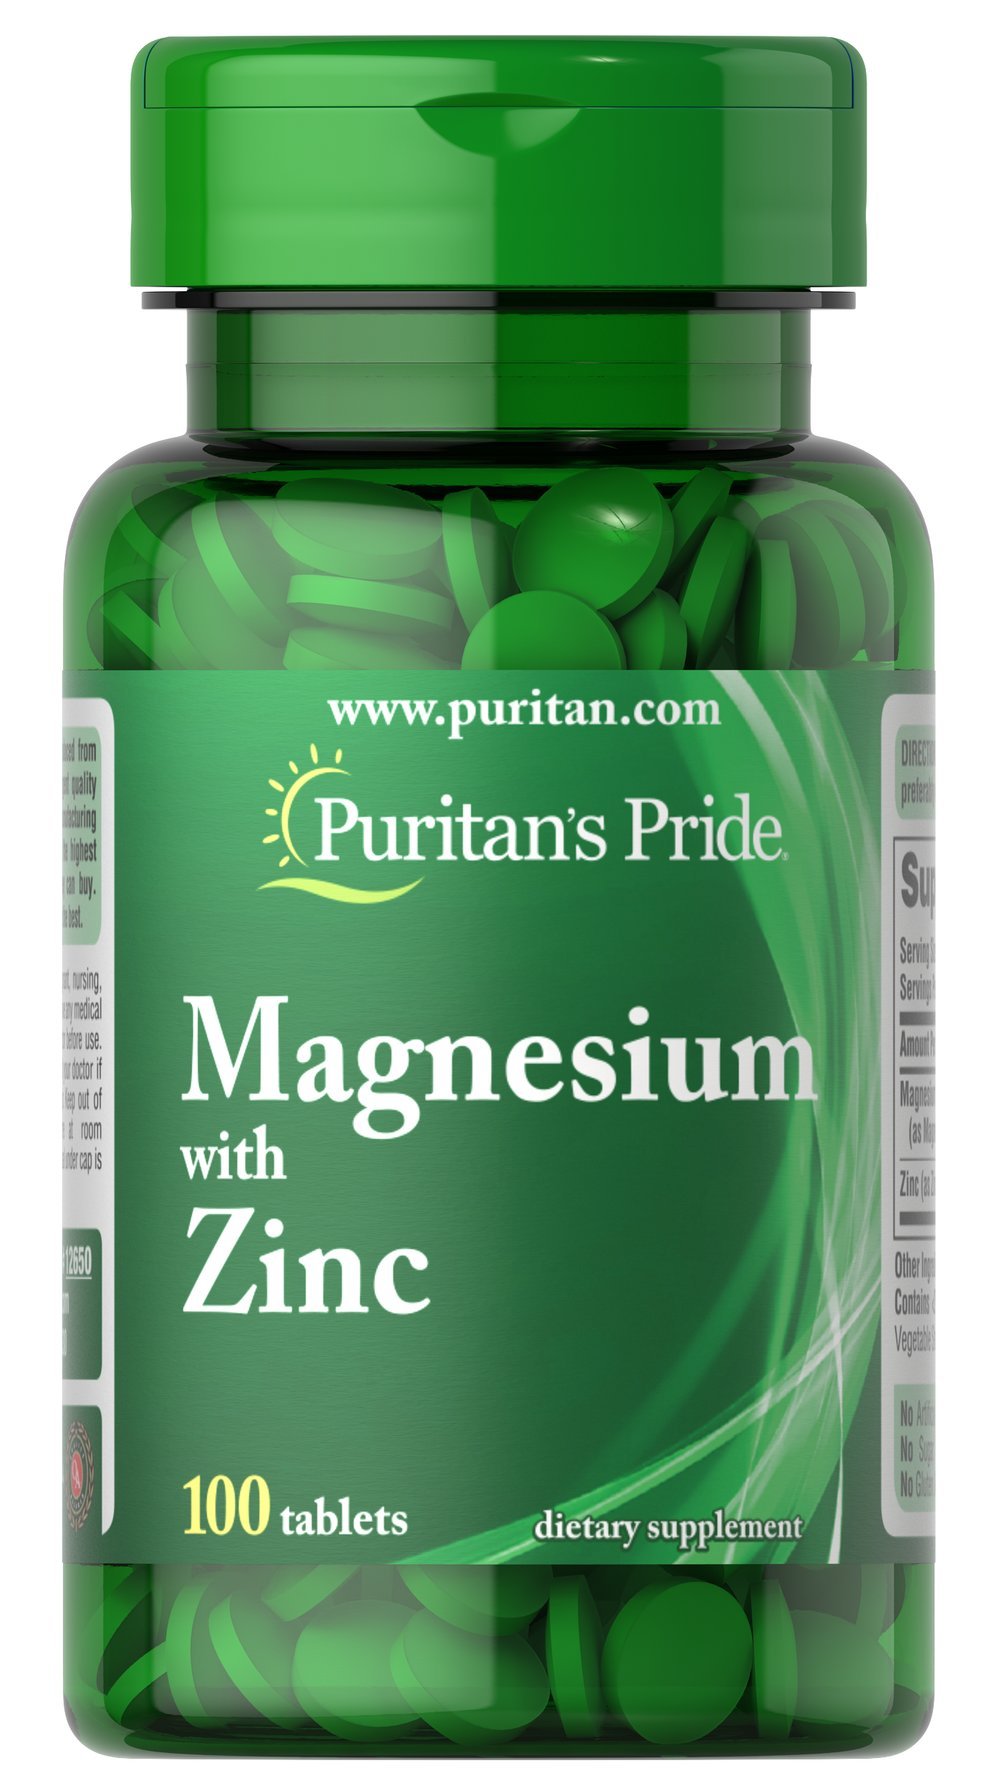 Magnesium with Zinc Thumbnail Alternate Bottle View